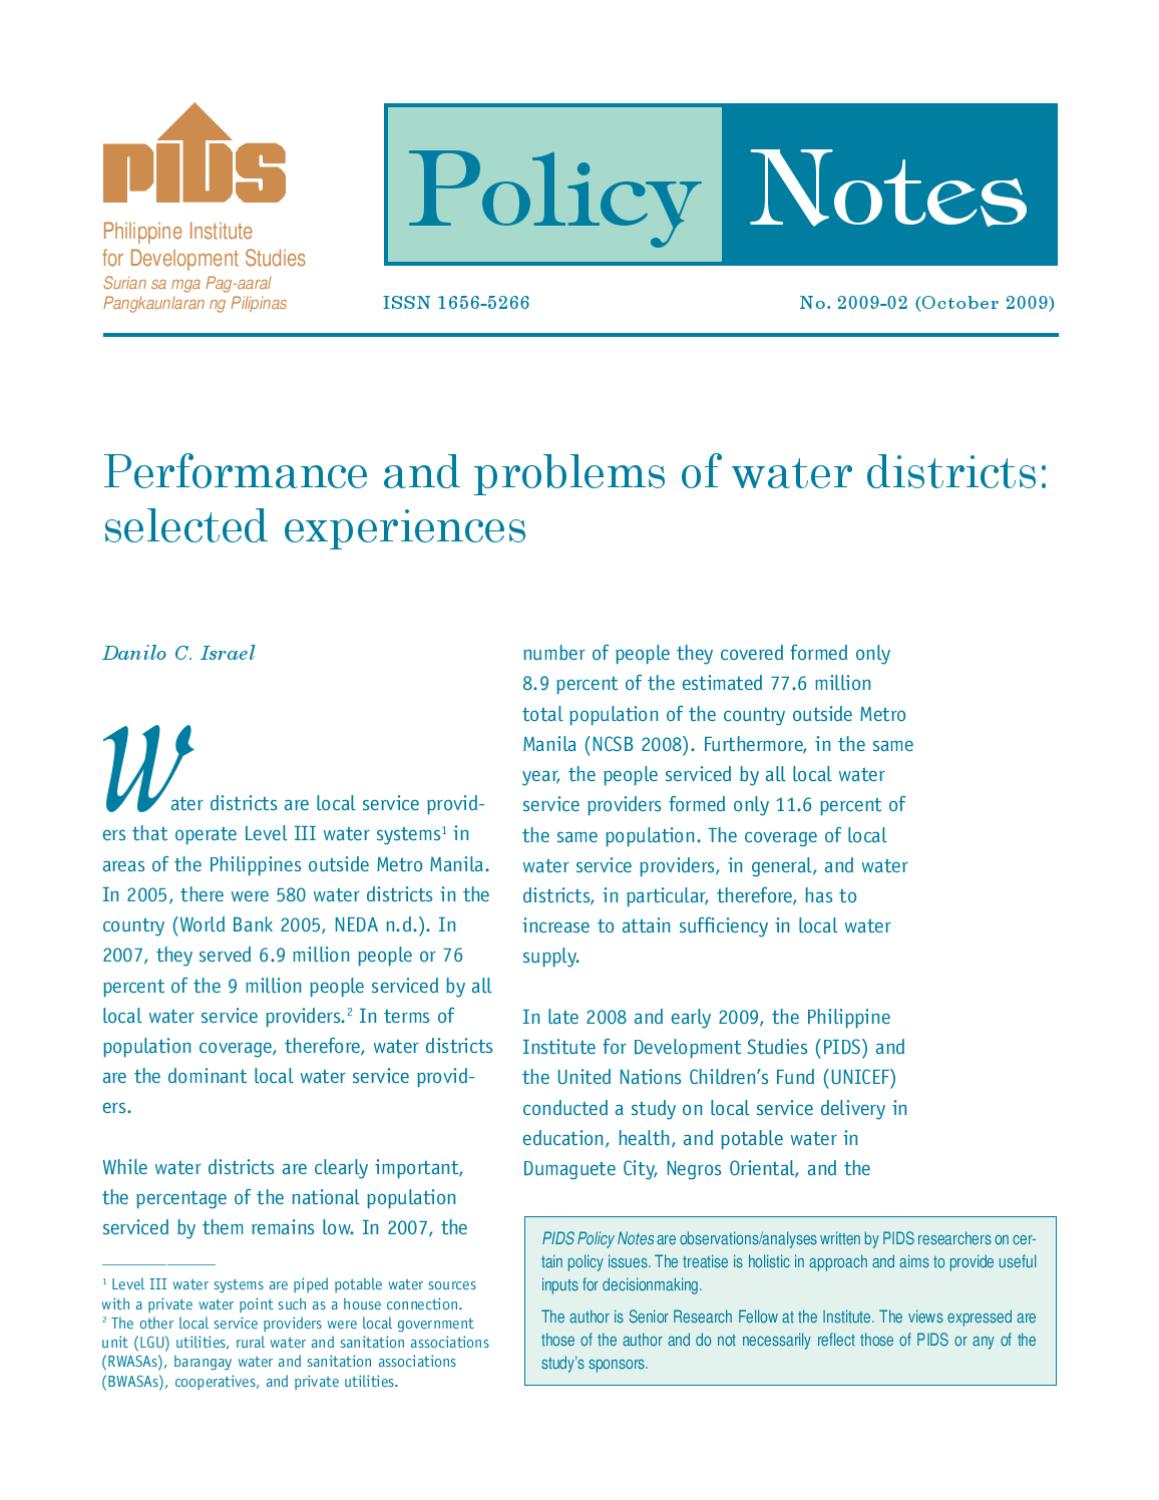 Performance and Problems of Water Districts: Selected